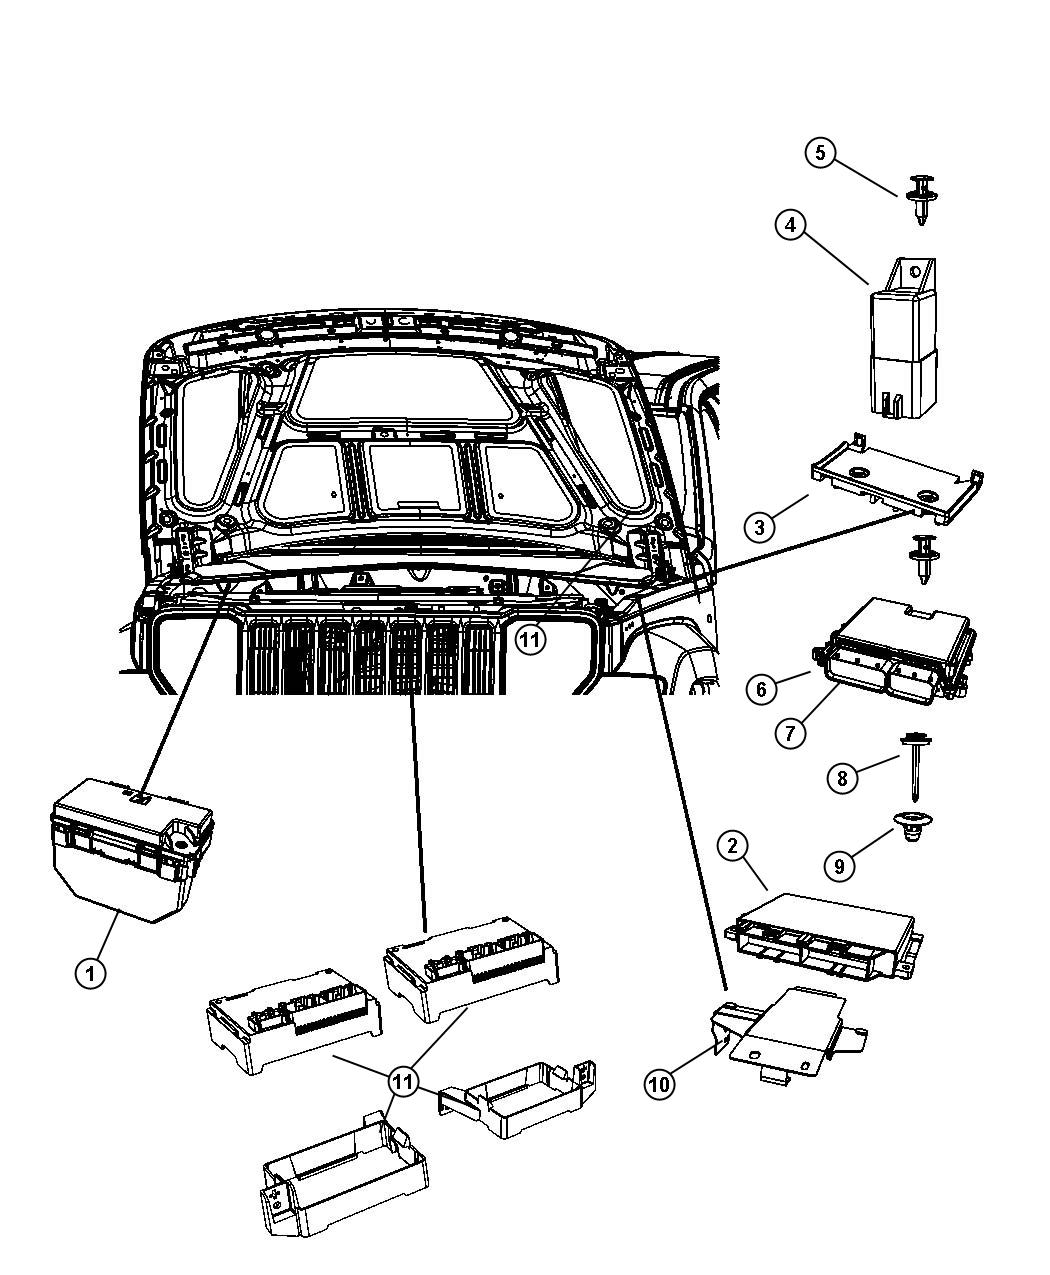 2010 Jeep Liberty Module. Totally integrated power